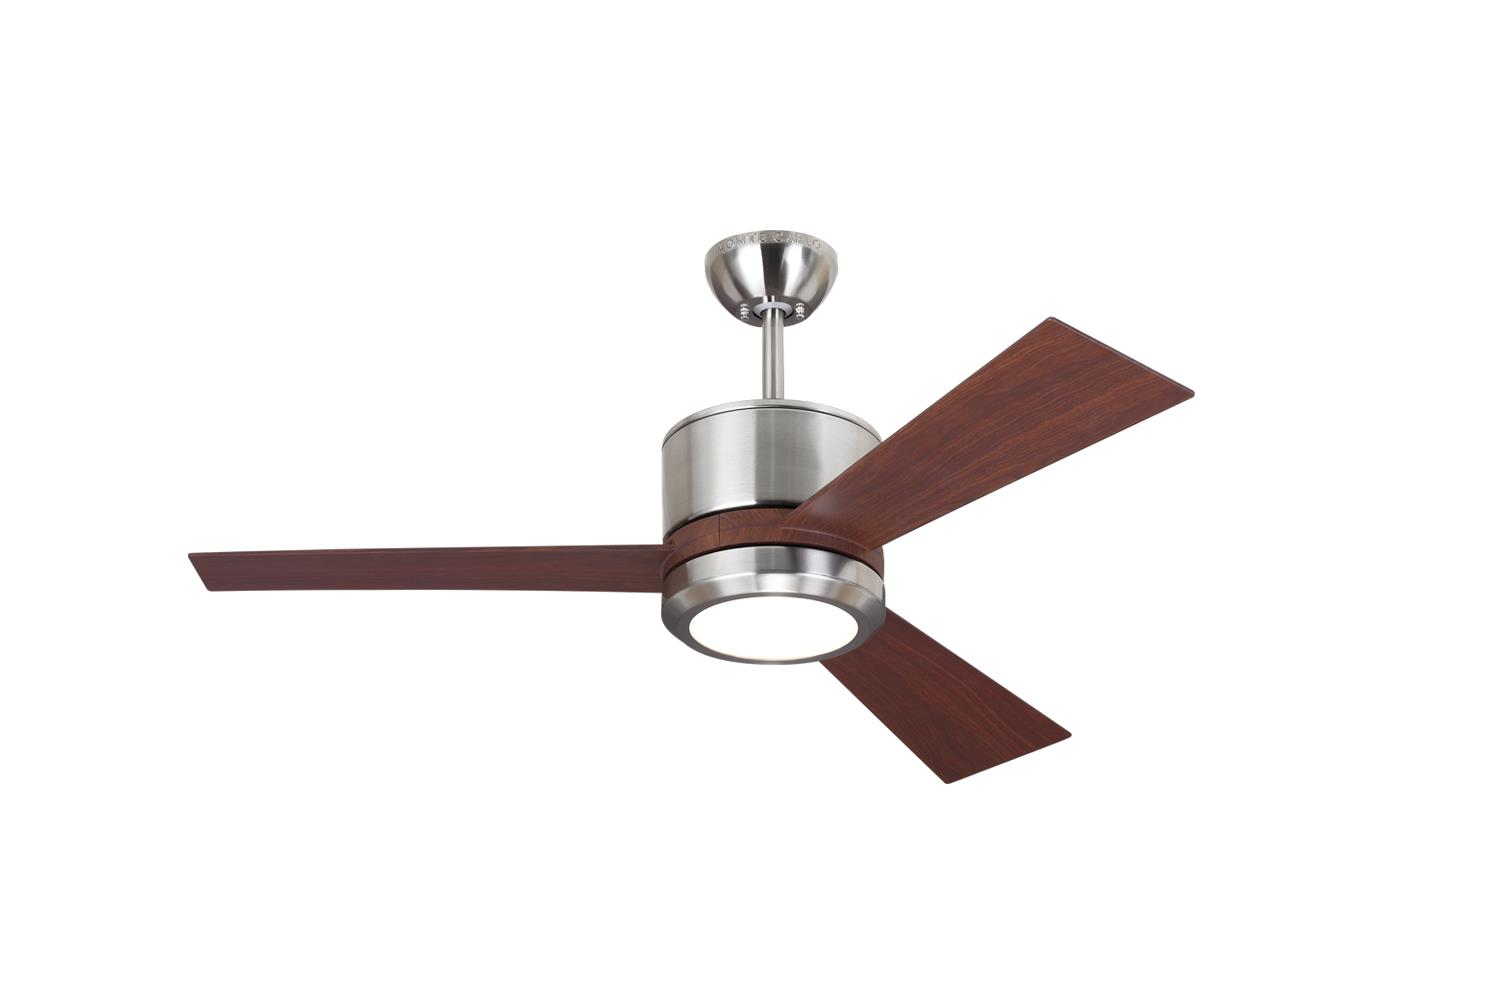 Small size ceiling fans by the monte carlo fan company 3vnr42bsd mozeypictures Image collections